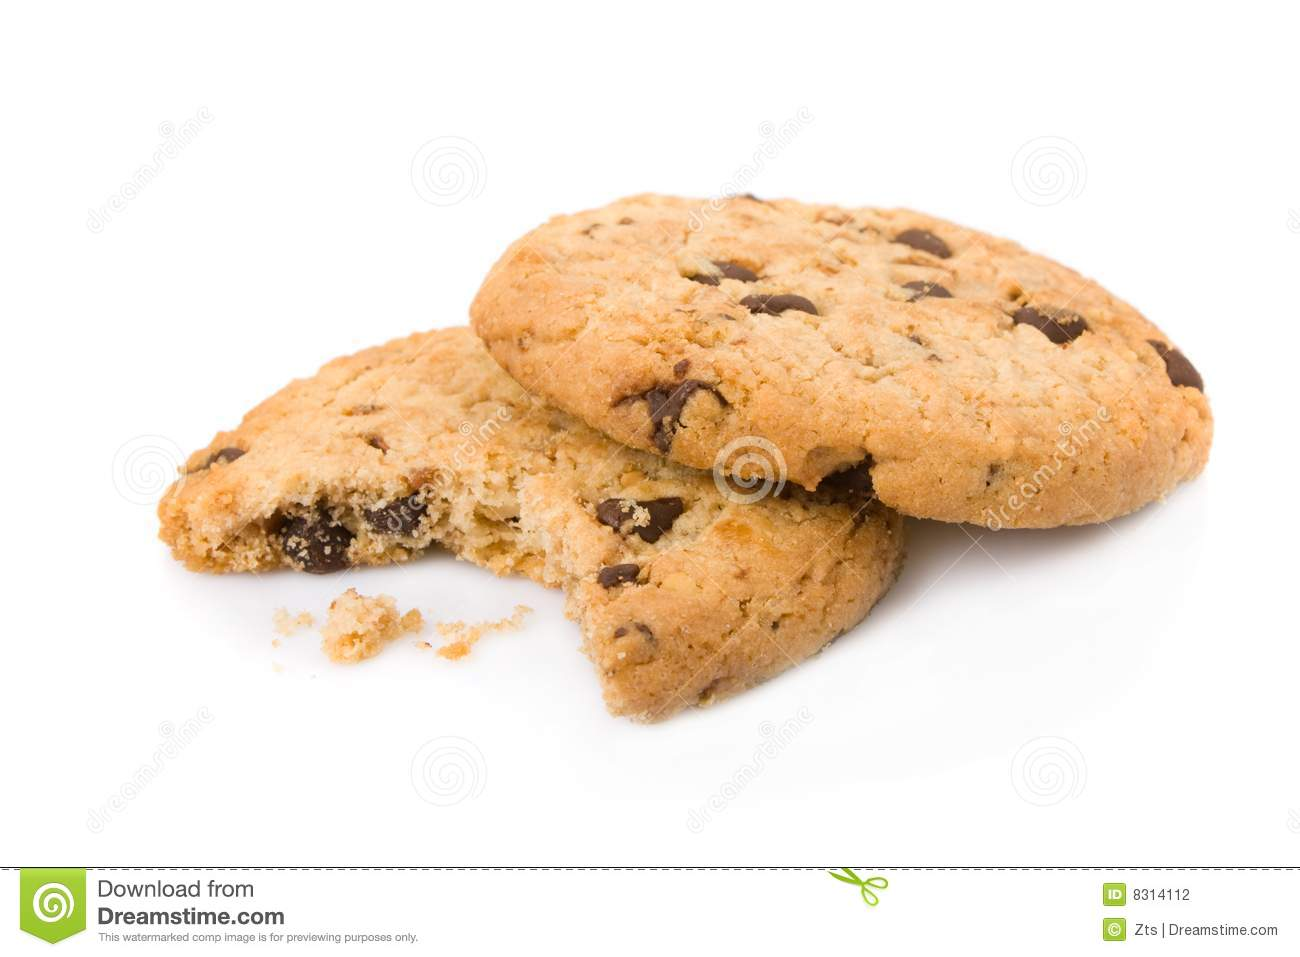 Bitten Chocolate Chip Cookies Stock Photography - Image: 8314112: dreamstime.com/stock-photography-bitten-chocolate-chip-cookies...